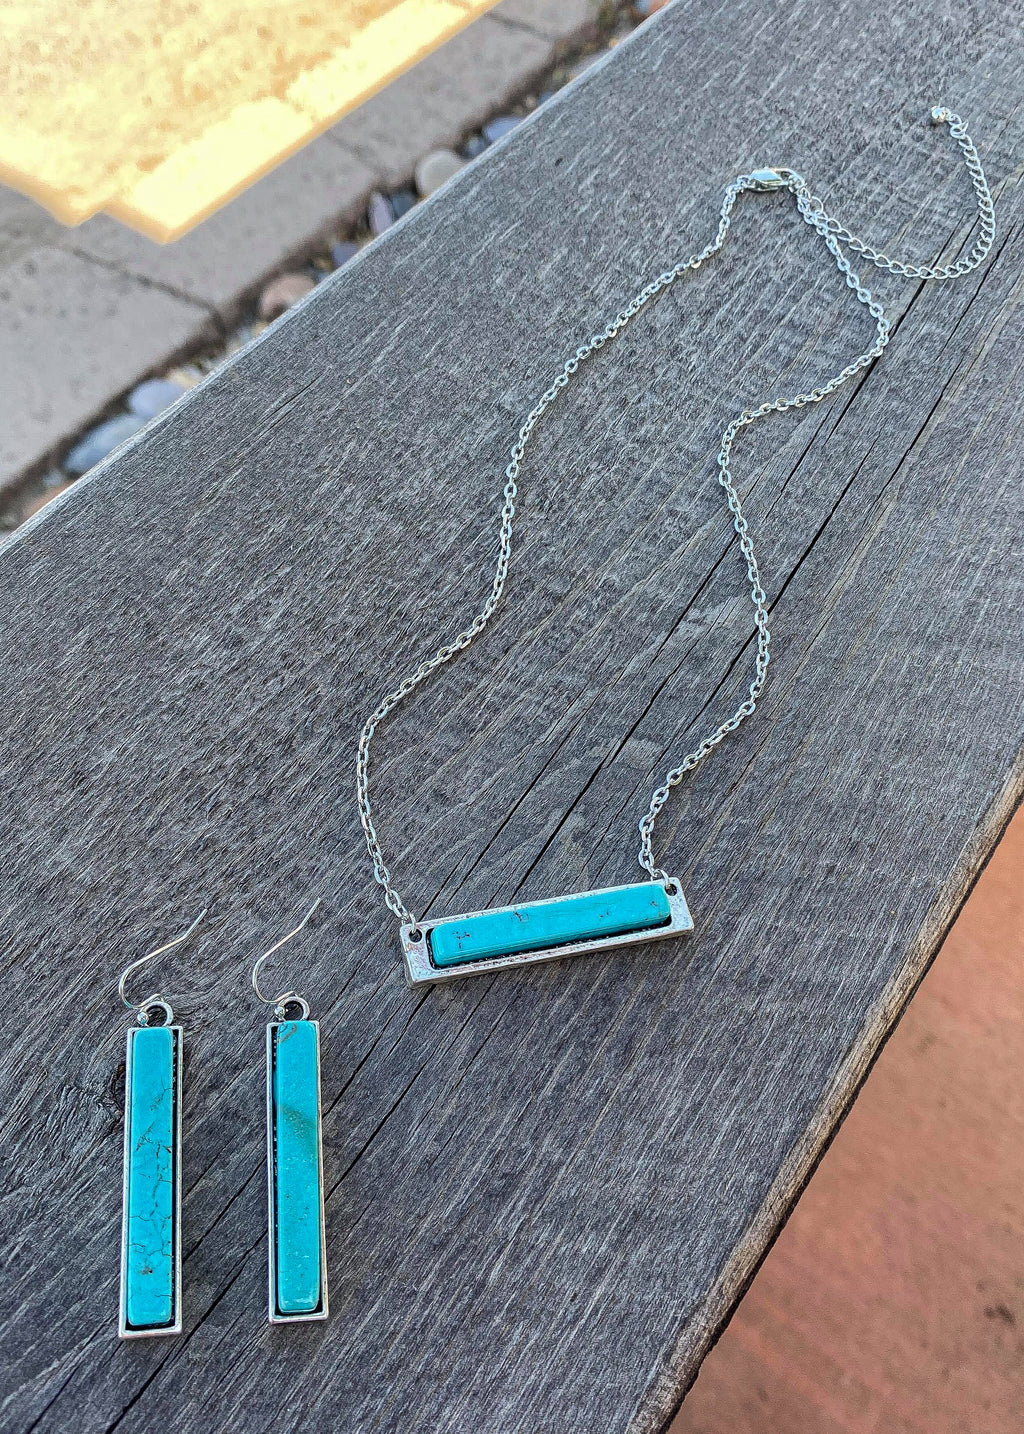 Silver Necklace with Turquoise Bar Necklace with Matching Turquoise Rectangle Bar Dangle Earrings with Fish Hook Backs, Taken Outside on Wood Surface in Natural Light